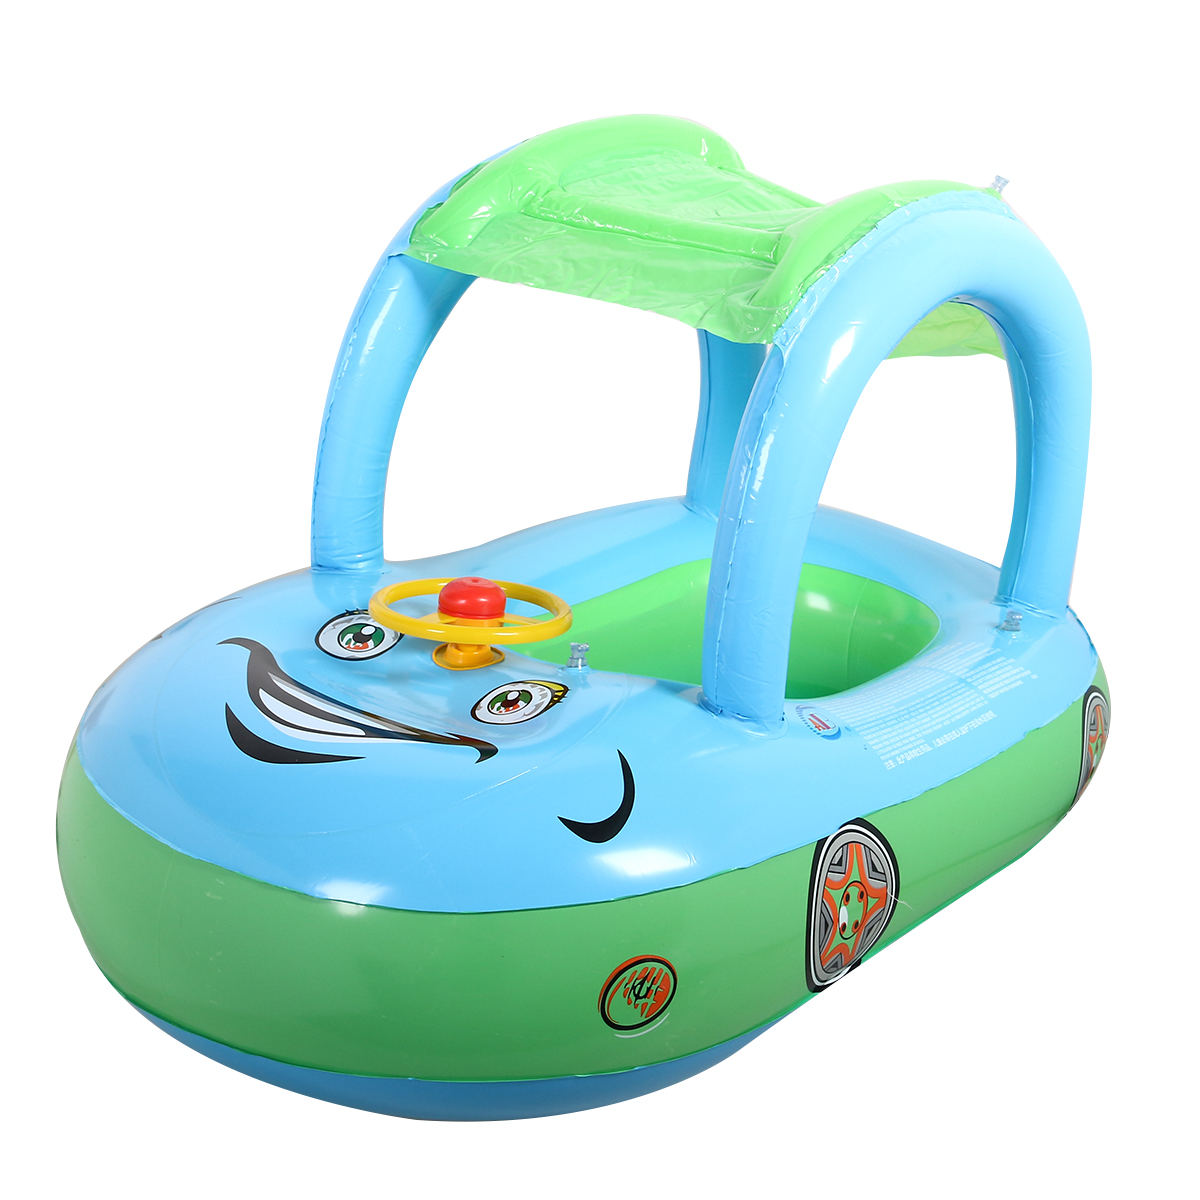 Cute Baby Float Seat Boat with Inflatable Ring Cartoon Car Swim Boat ...